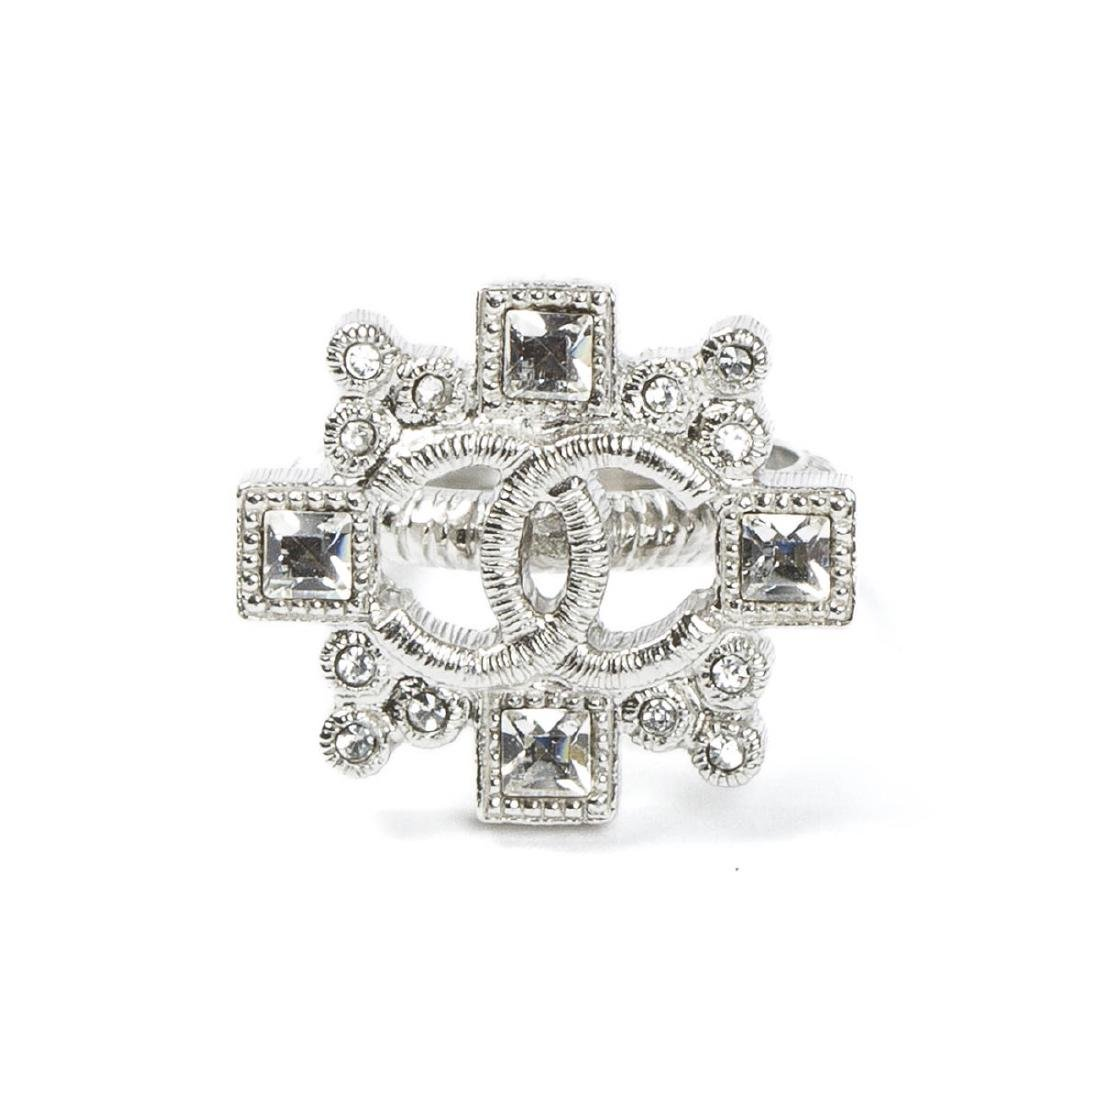 Chanel Intertwined Logo and Cross Ring 59 cm